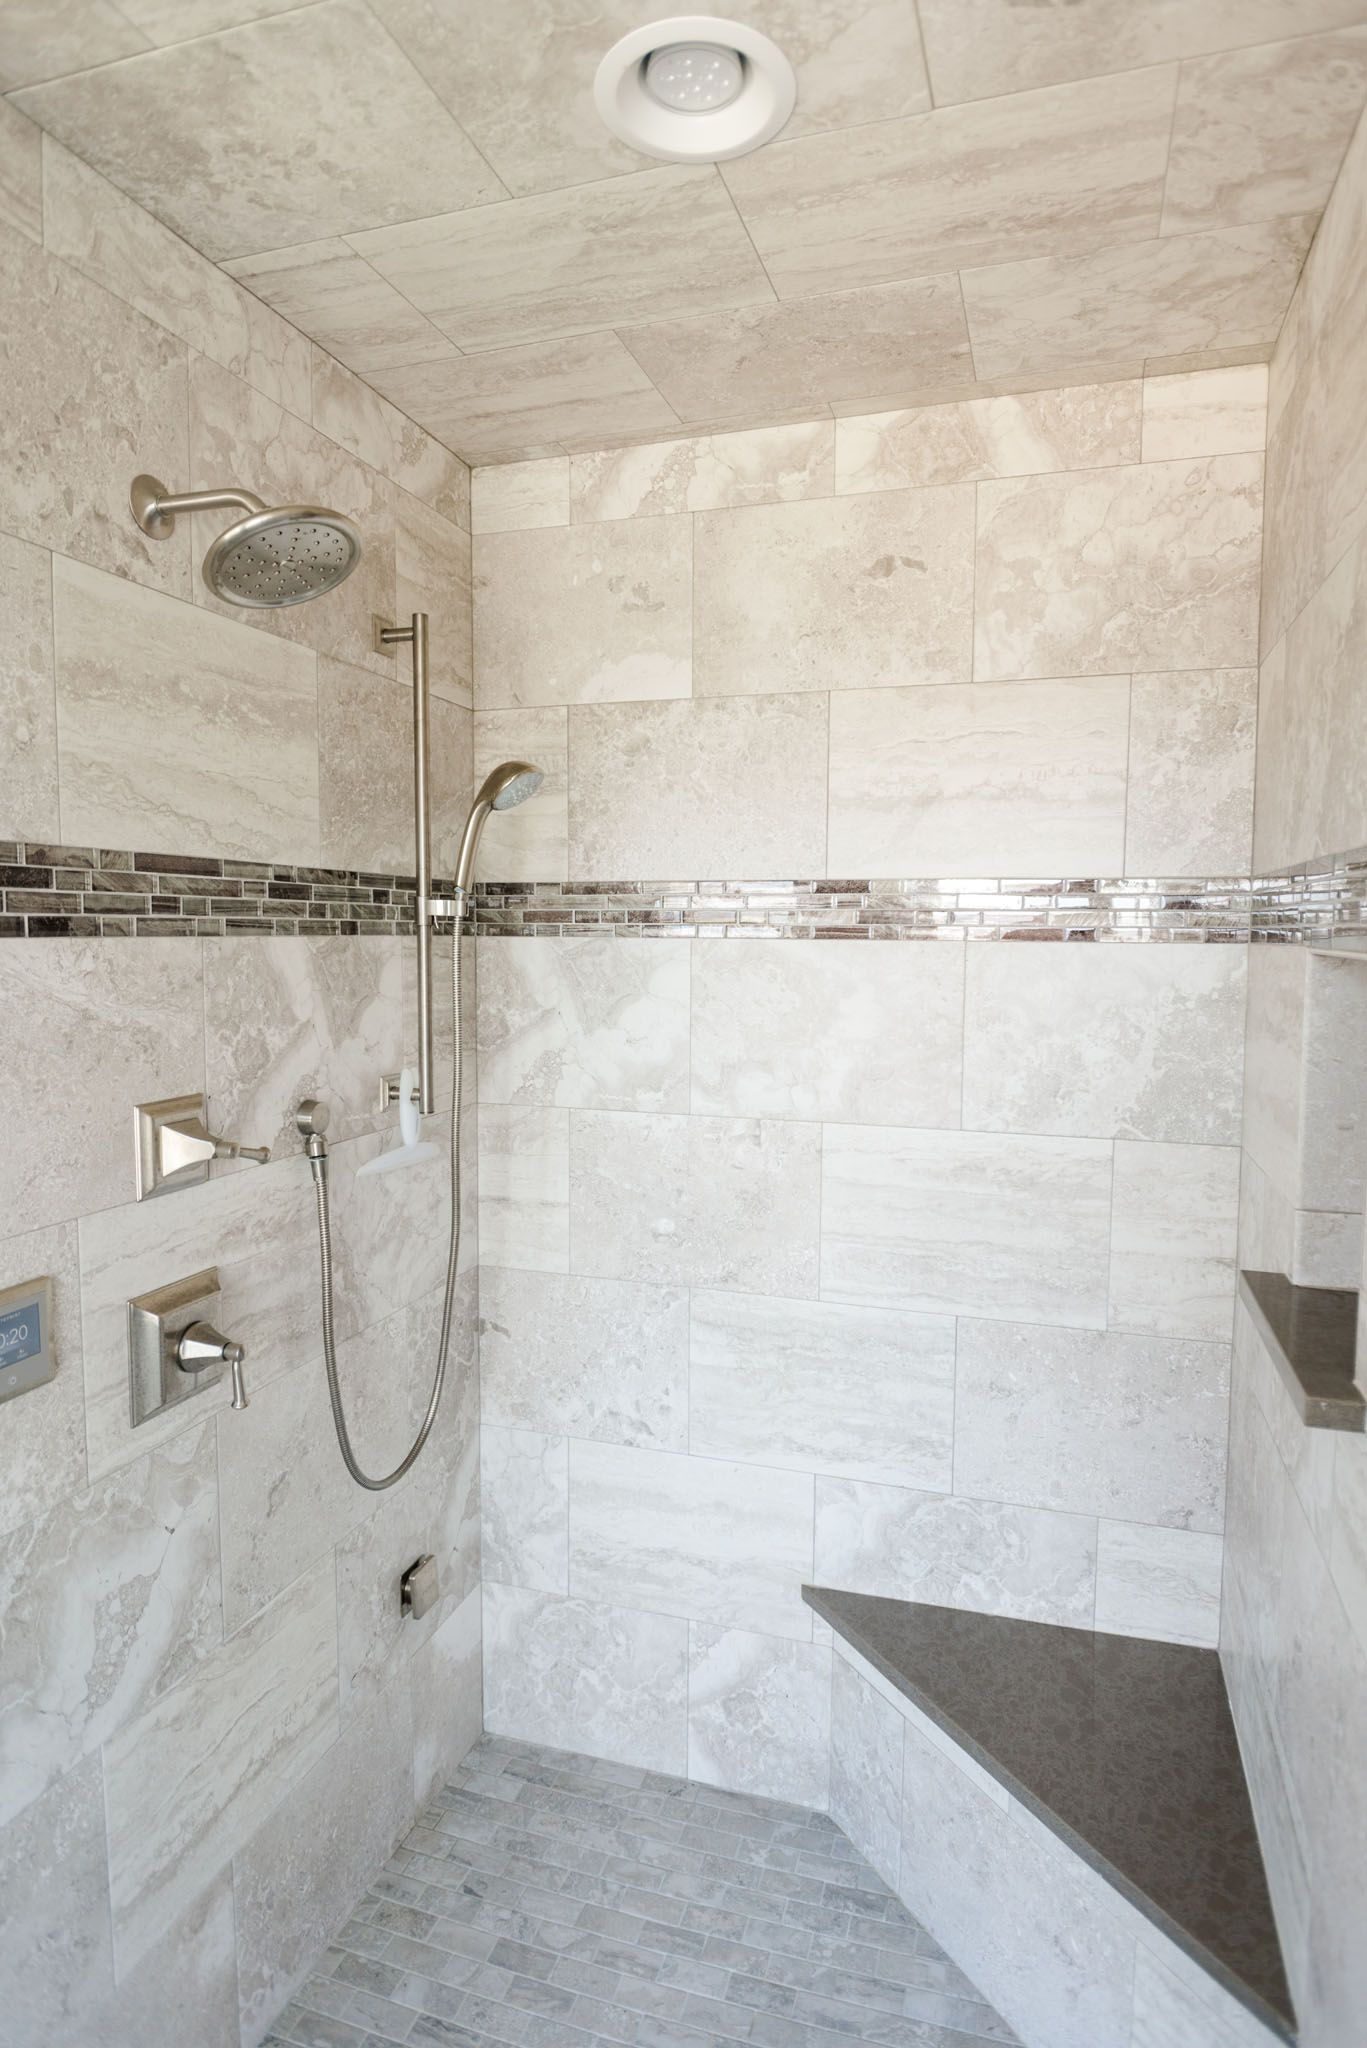 Brothers Services Is Maryland S Full Service Remodeler And Contractor Bathroom Renovations Bathroom Design Home Improvement Contractors [ 2048 x 1367 Pixel ]